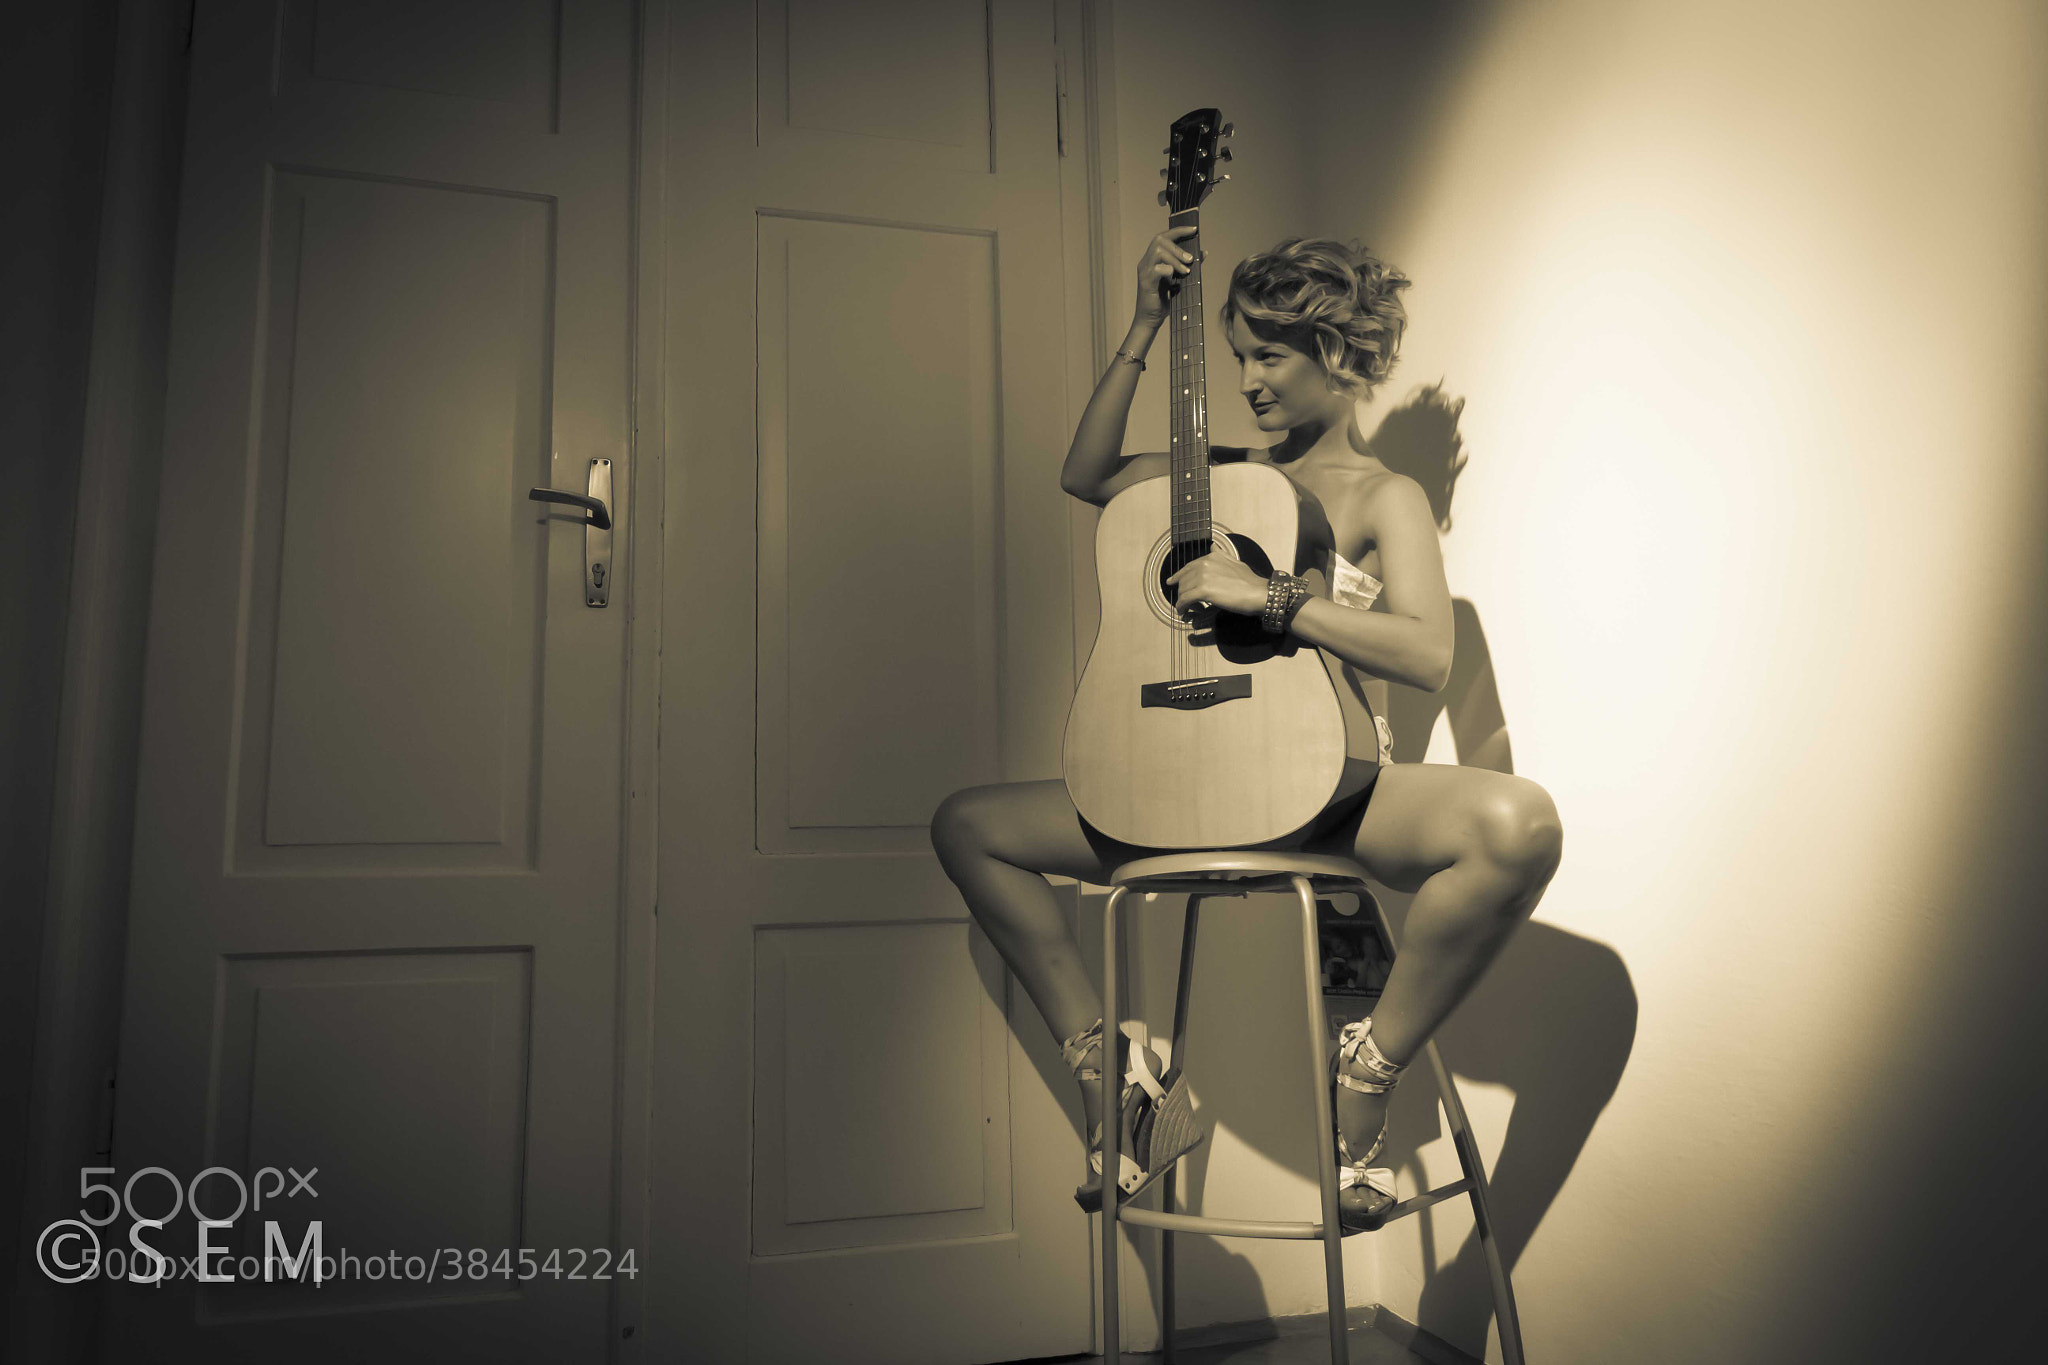 Photograph meanwhile, i play by Kathrin Lercher on 500px